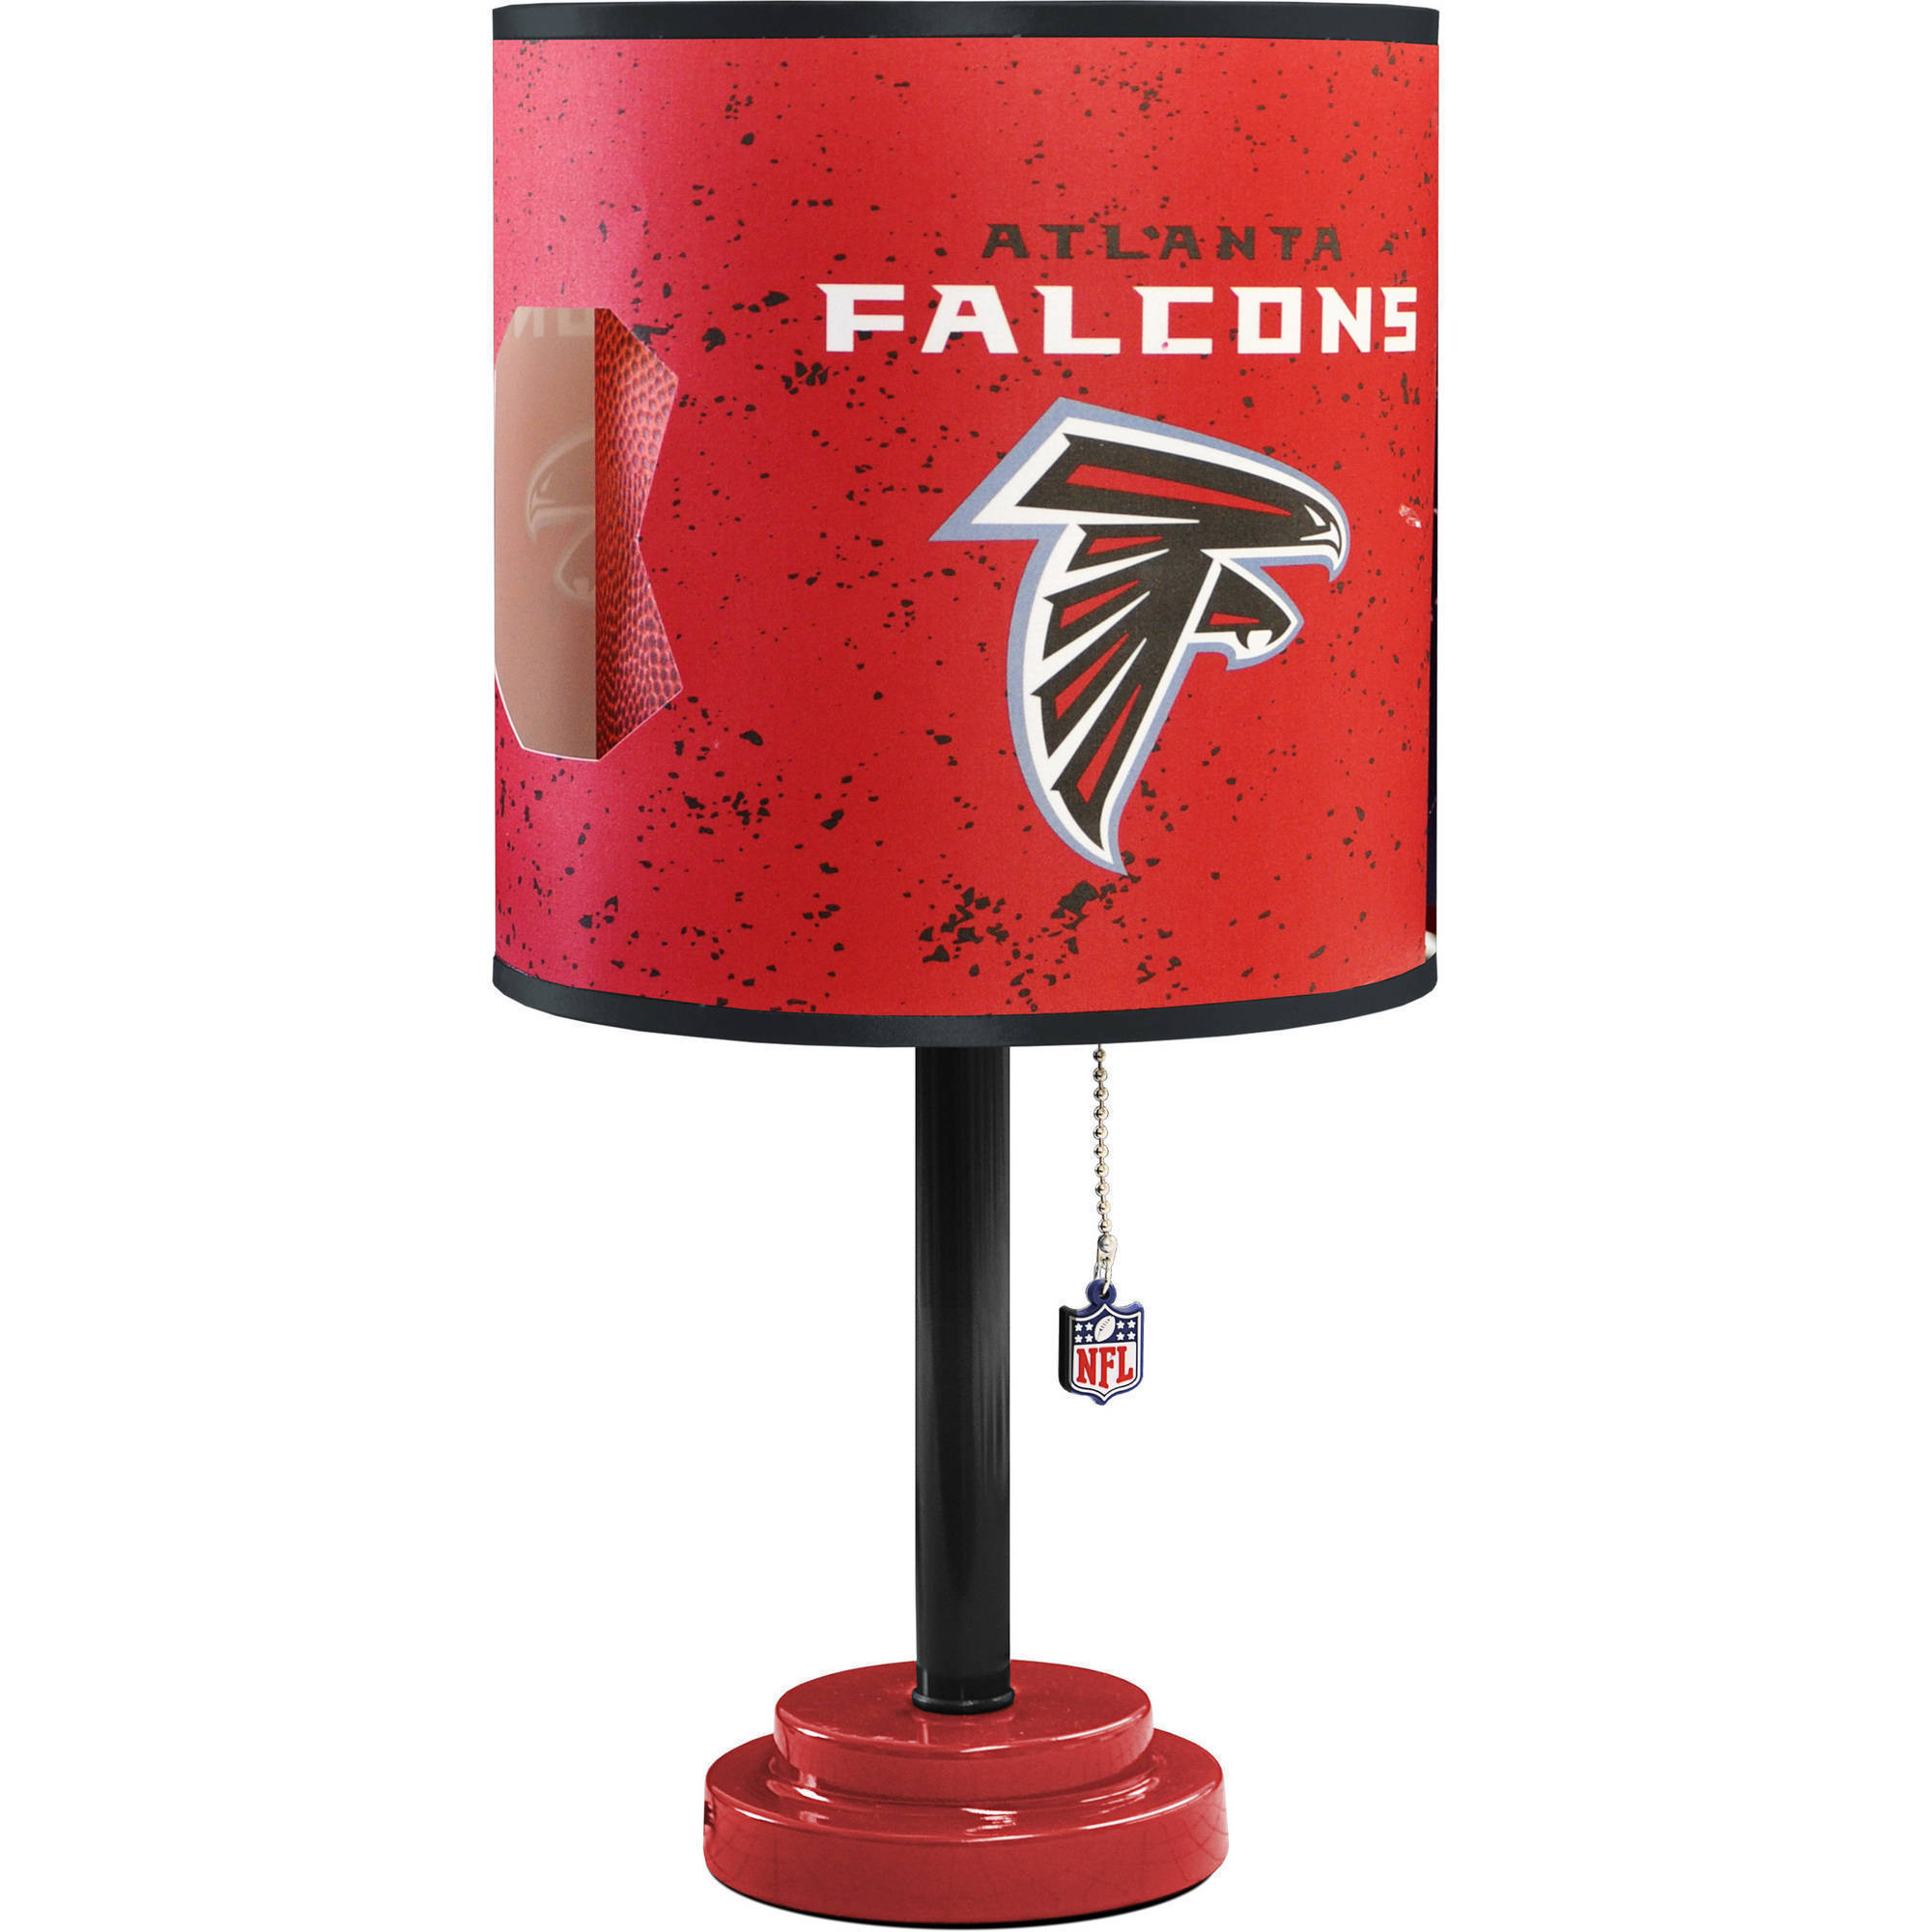 Atlanta Falcons Die-Cut Table Lamp